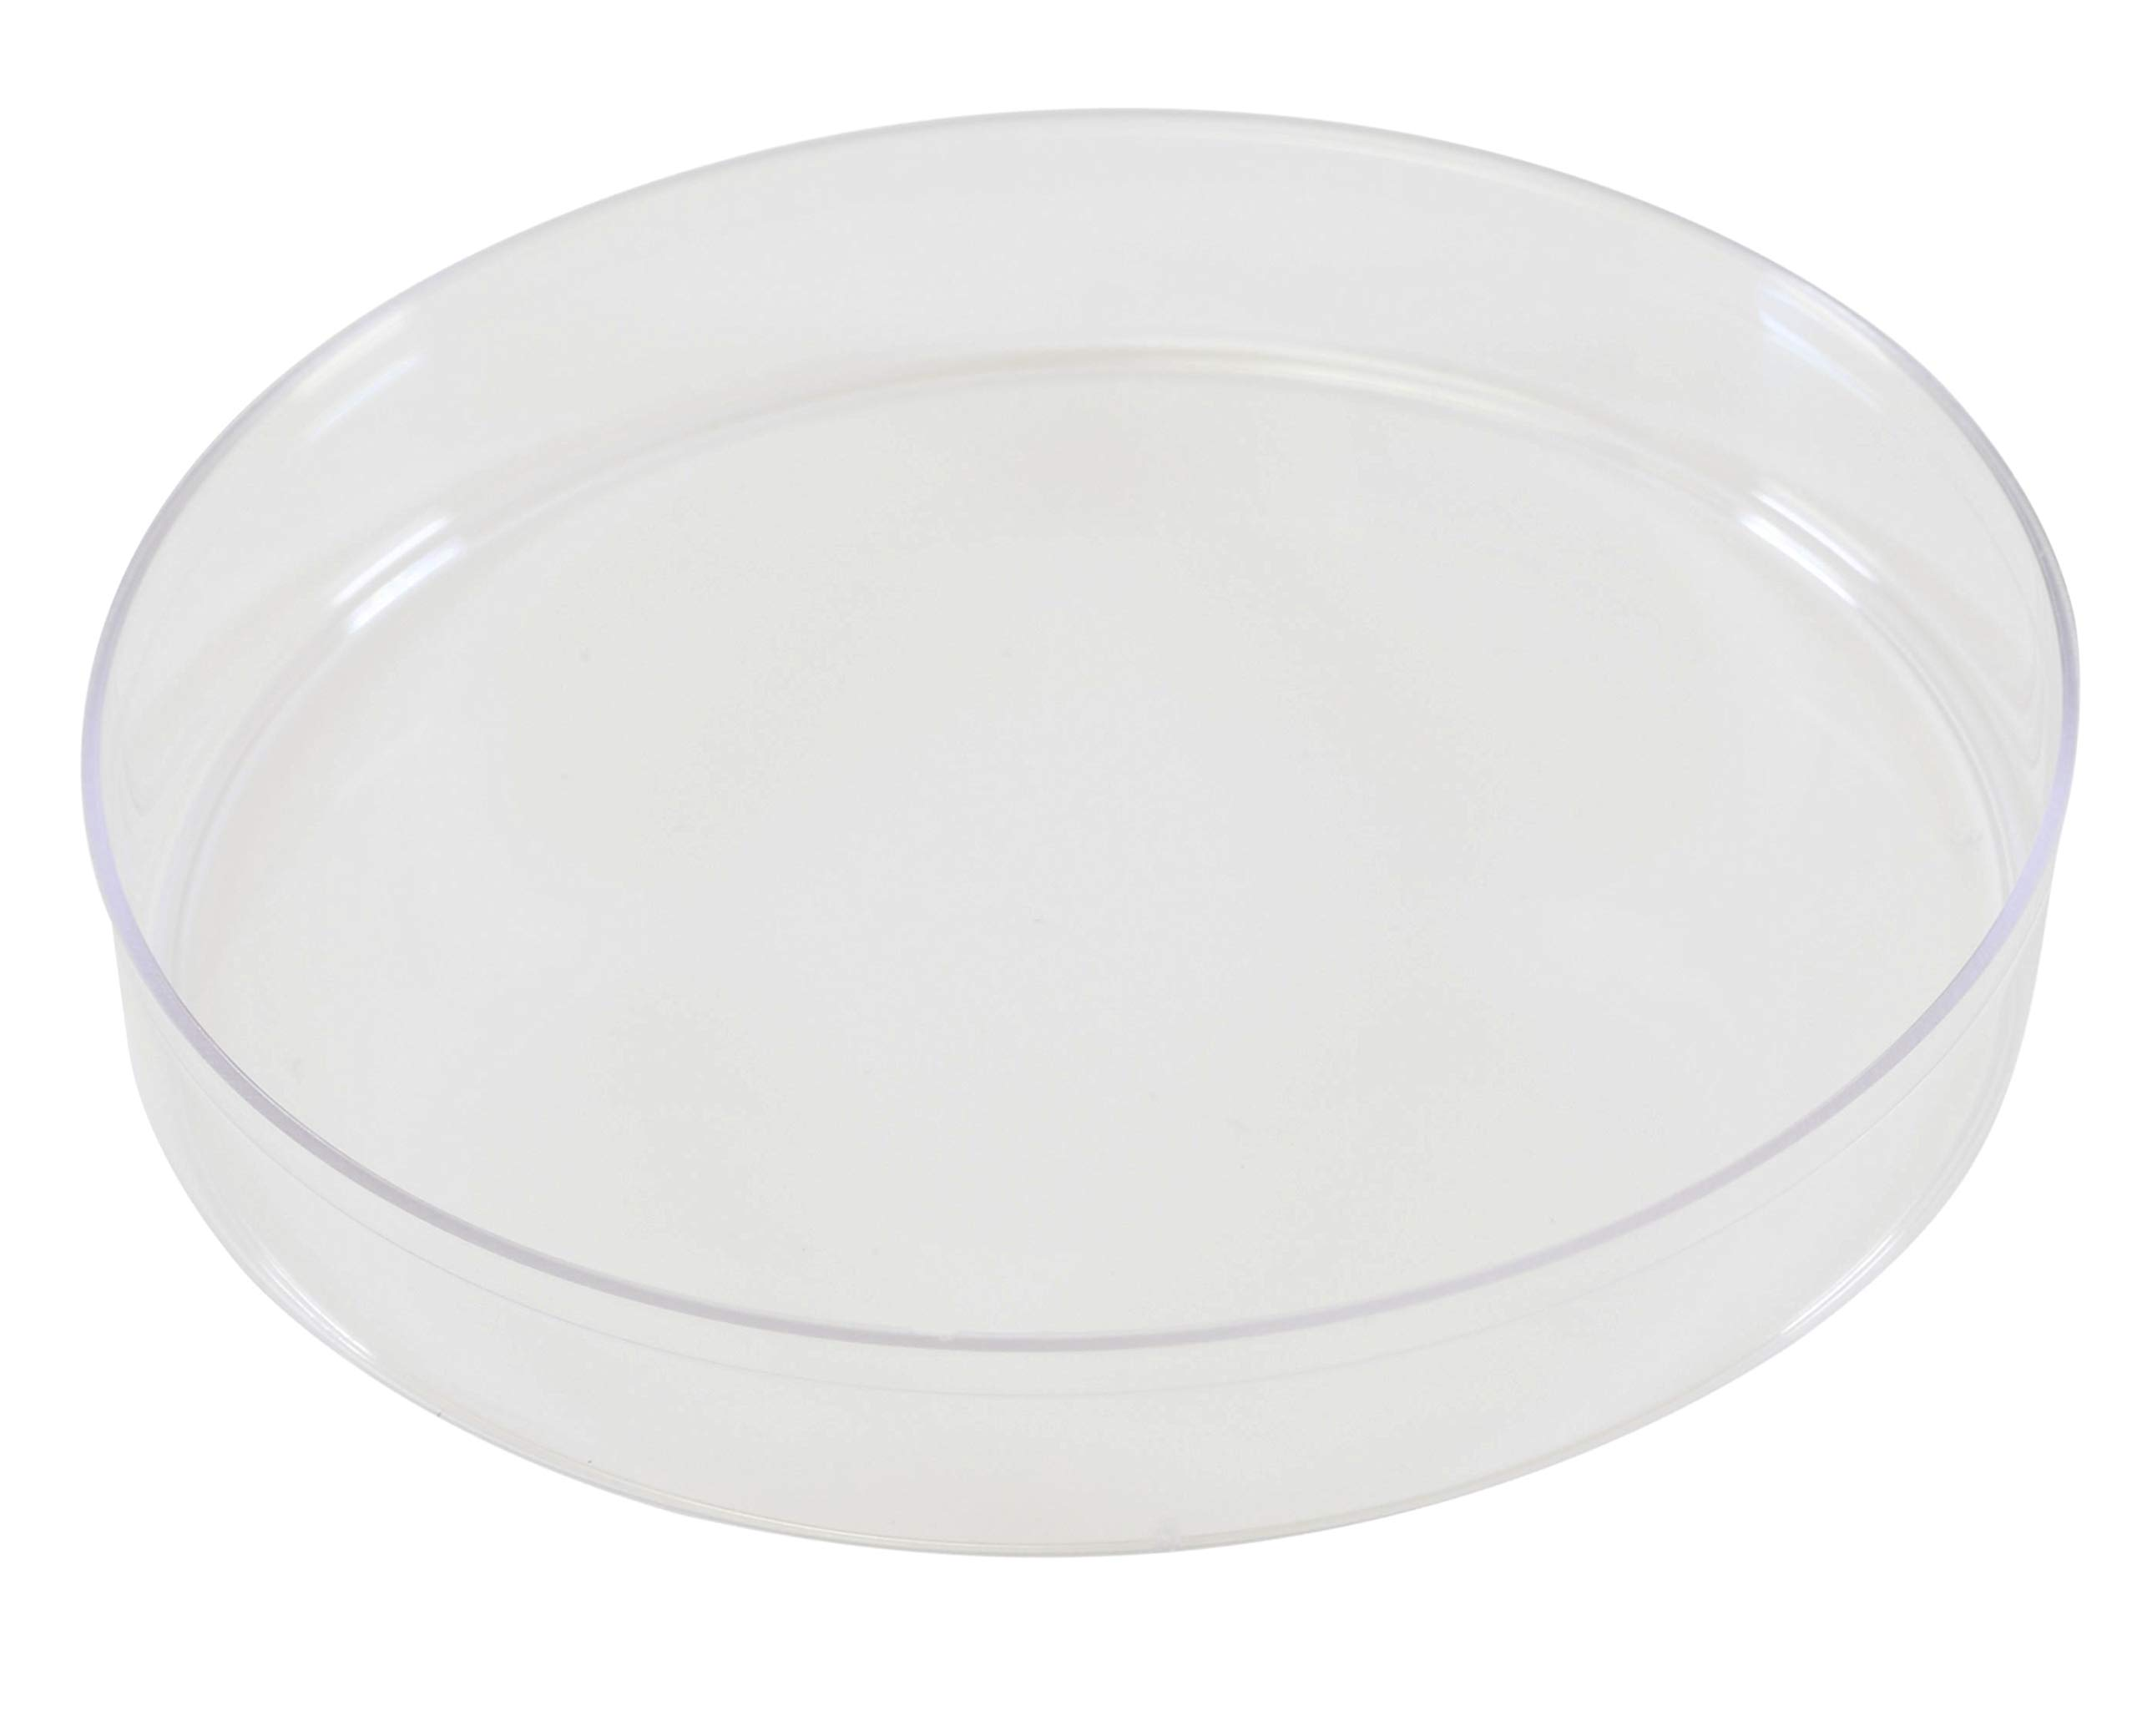 Petri Dish, Empty, with Stacking Ring, Sterile, Polystyrene, 100x15mm, 500 per Case, by Parter Medical Products by Hardy Diagnostics